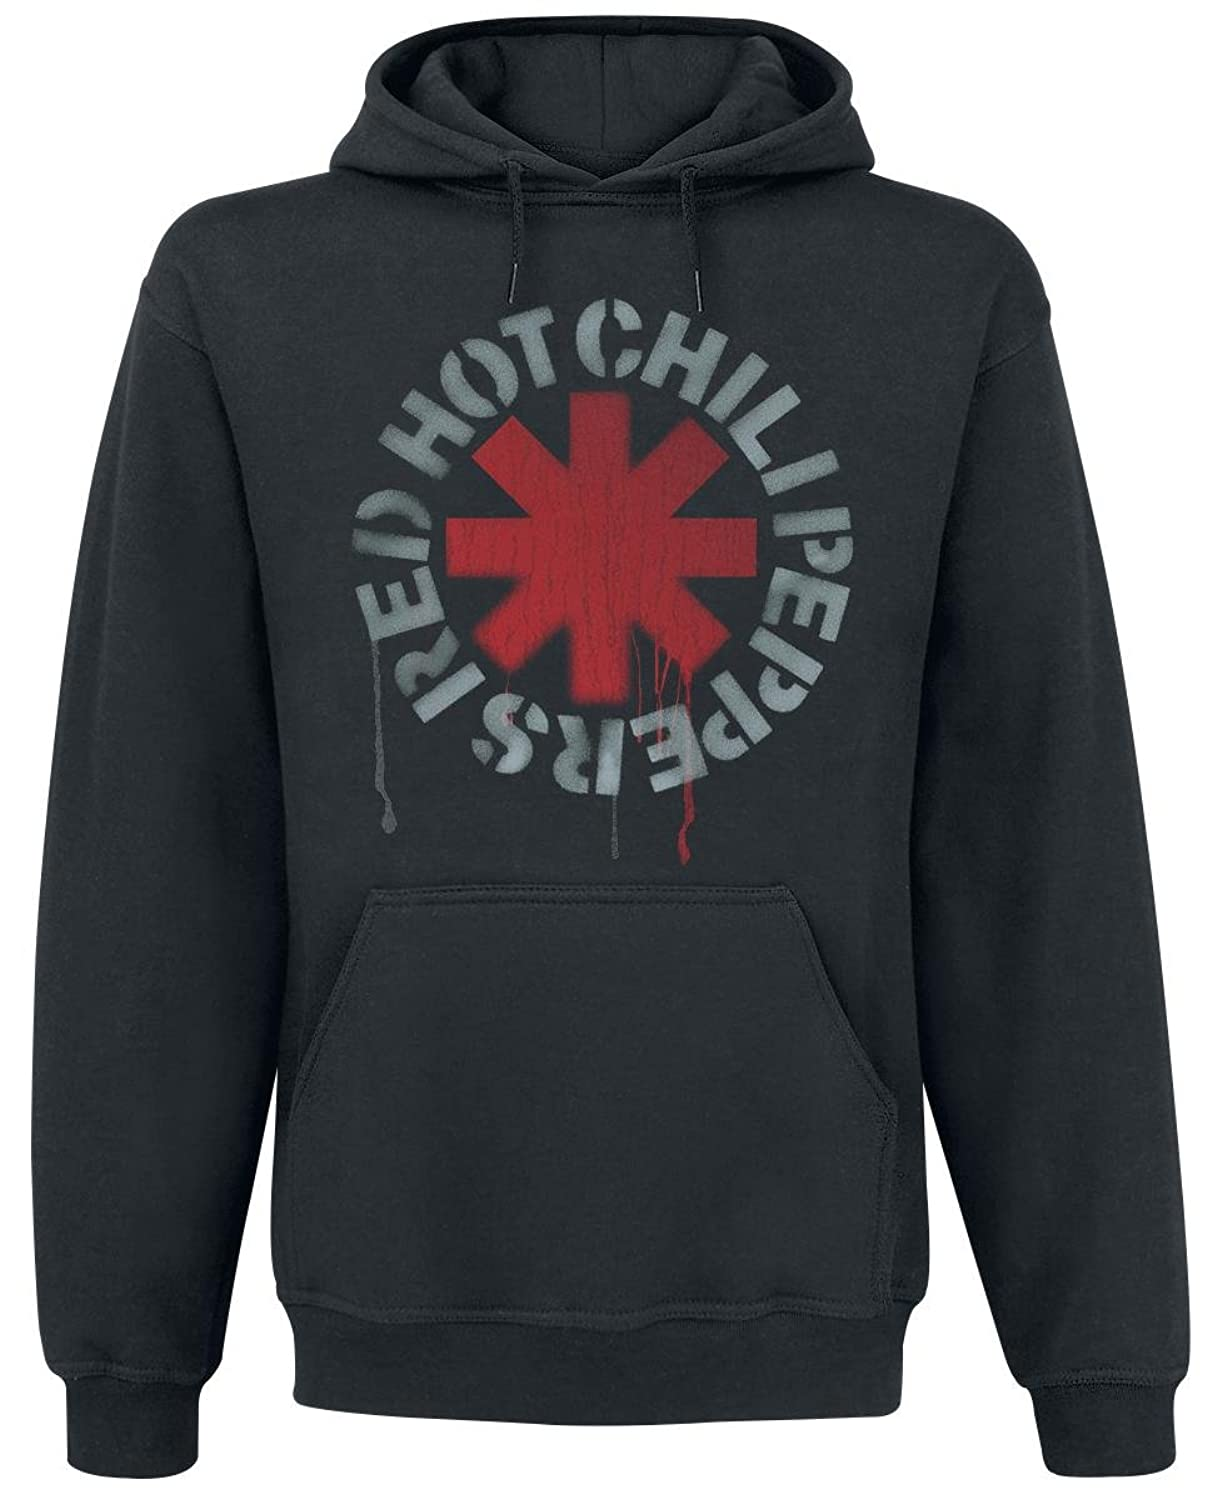 Red Hot Chili Peppers Stencil Hooded sweatshirt black